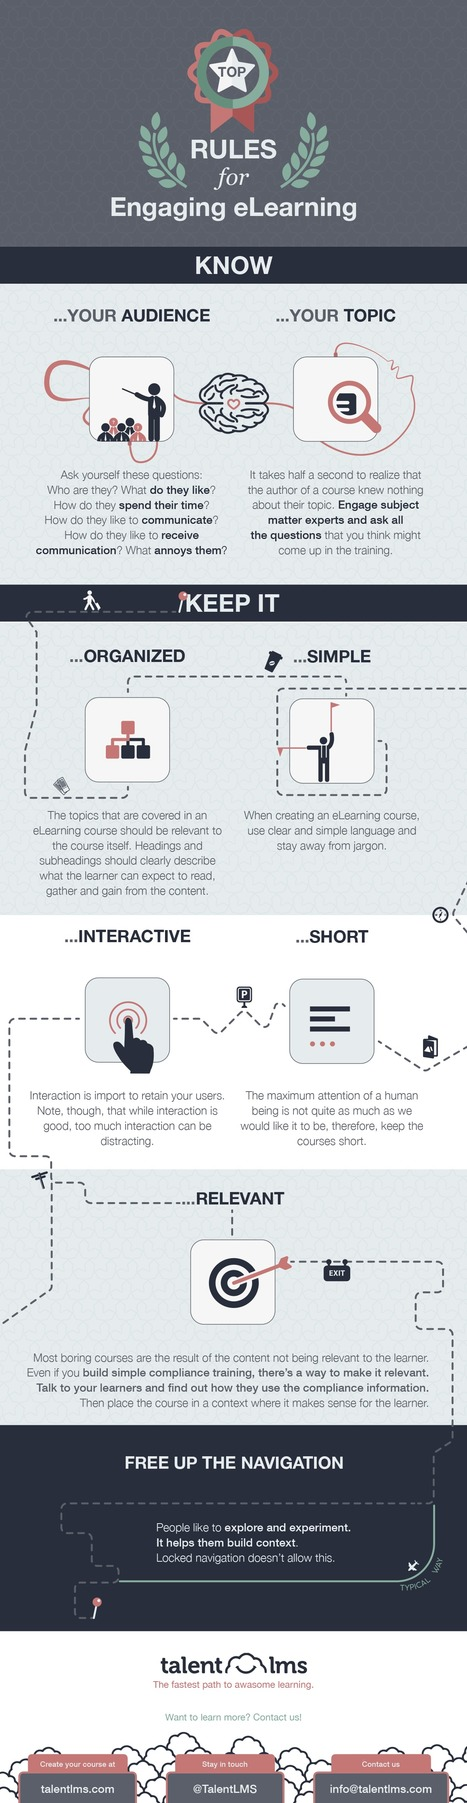 Top Rules of Engaging eLearning Infographic | The e-Learning Designer | Scoop.it